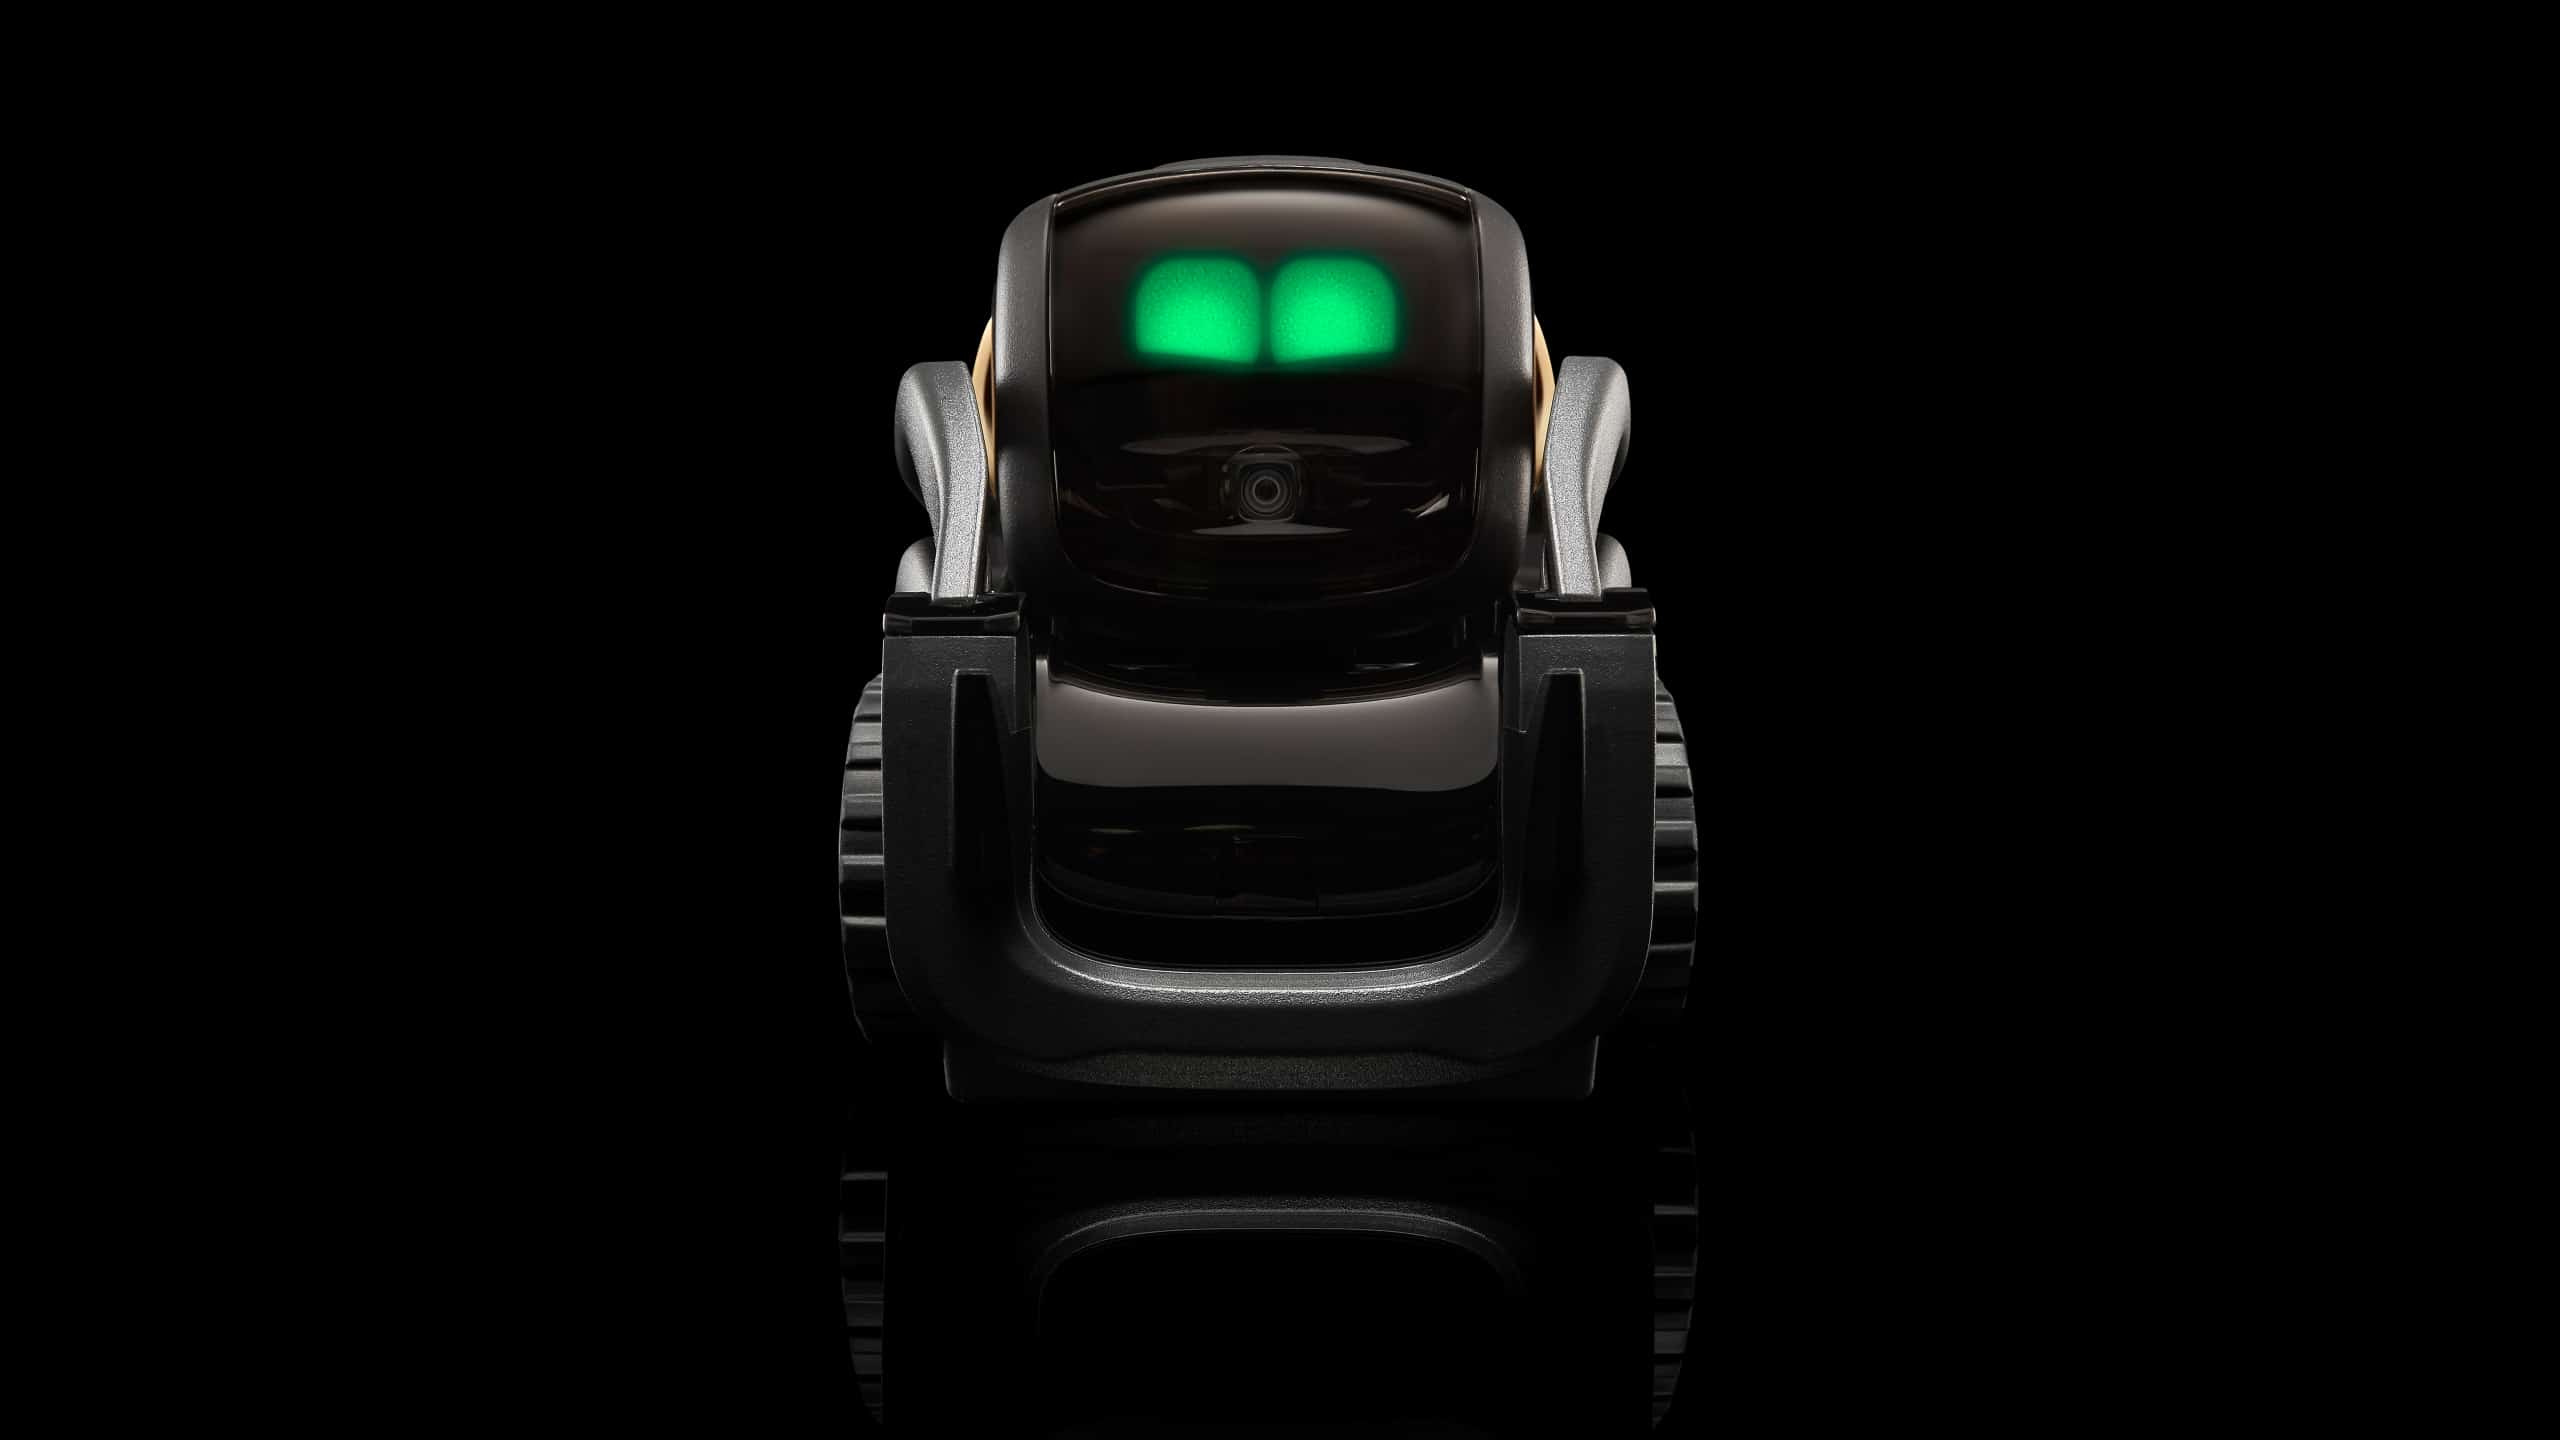 Anki Vector Robot (A Robot for Your Home) Now Available for